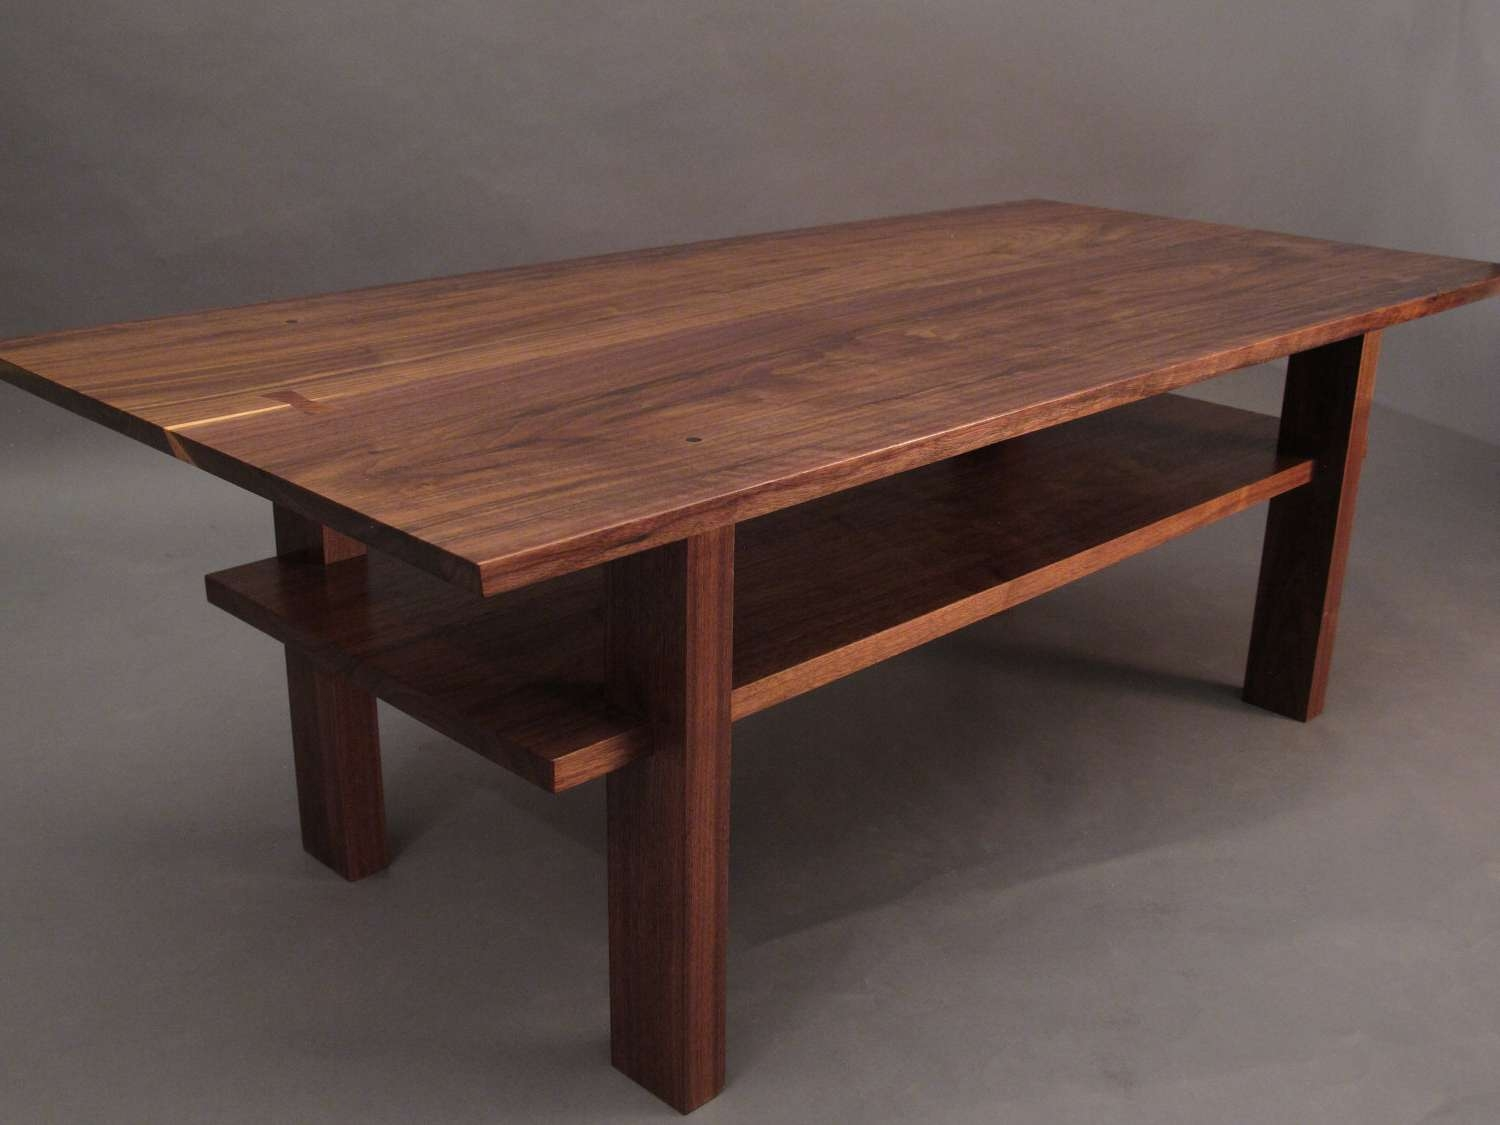 Recent Narrow Coffee Tables Inside Walnut Coffee Table Small Wood Tables For Living Room Narrow (View 18 of 20)